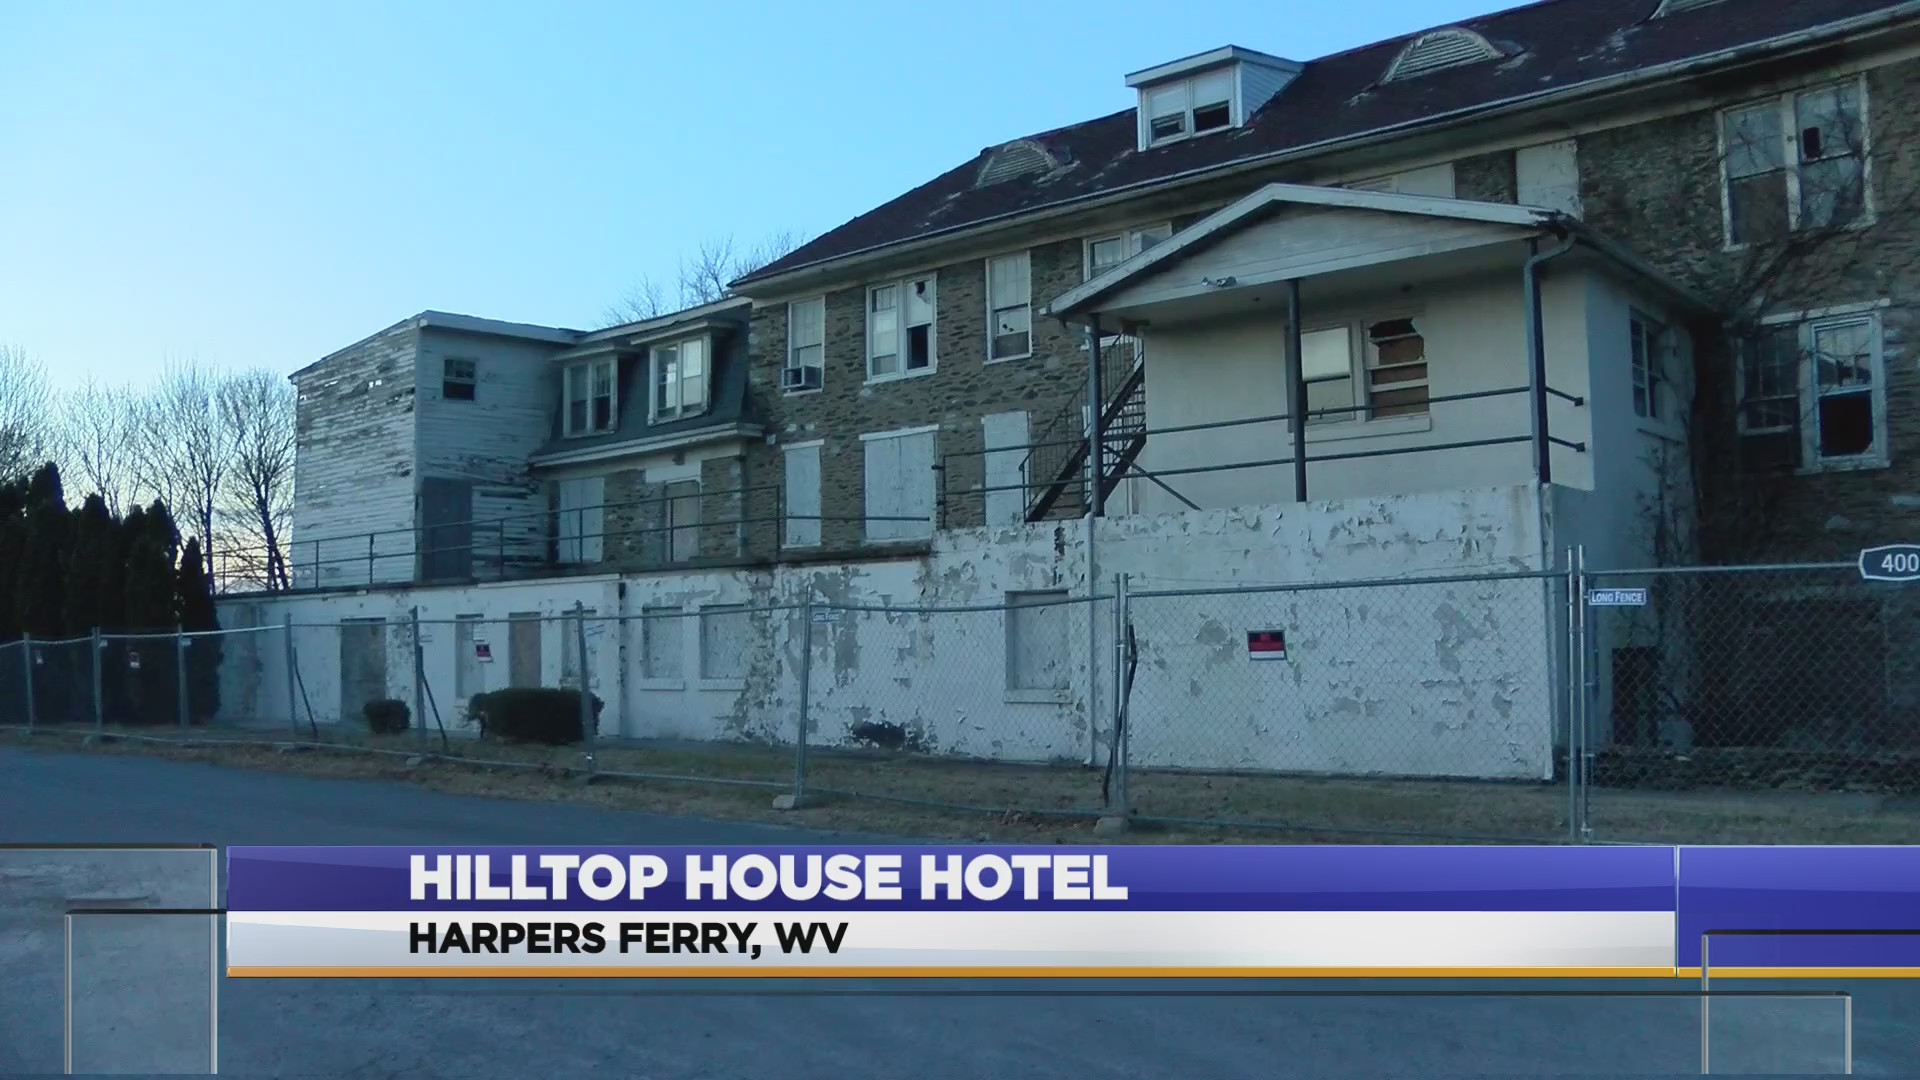 Hilltop_House_Hotel_1_20181220032223